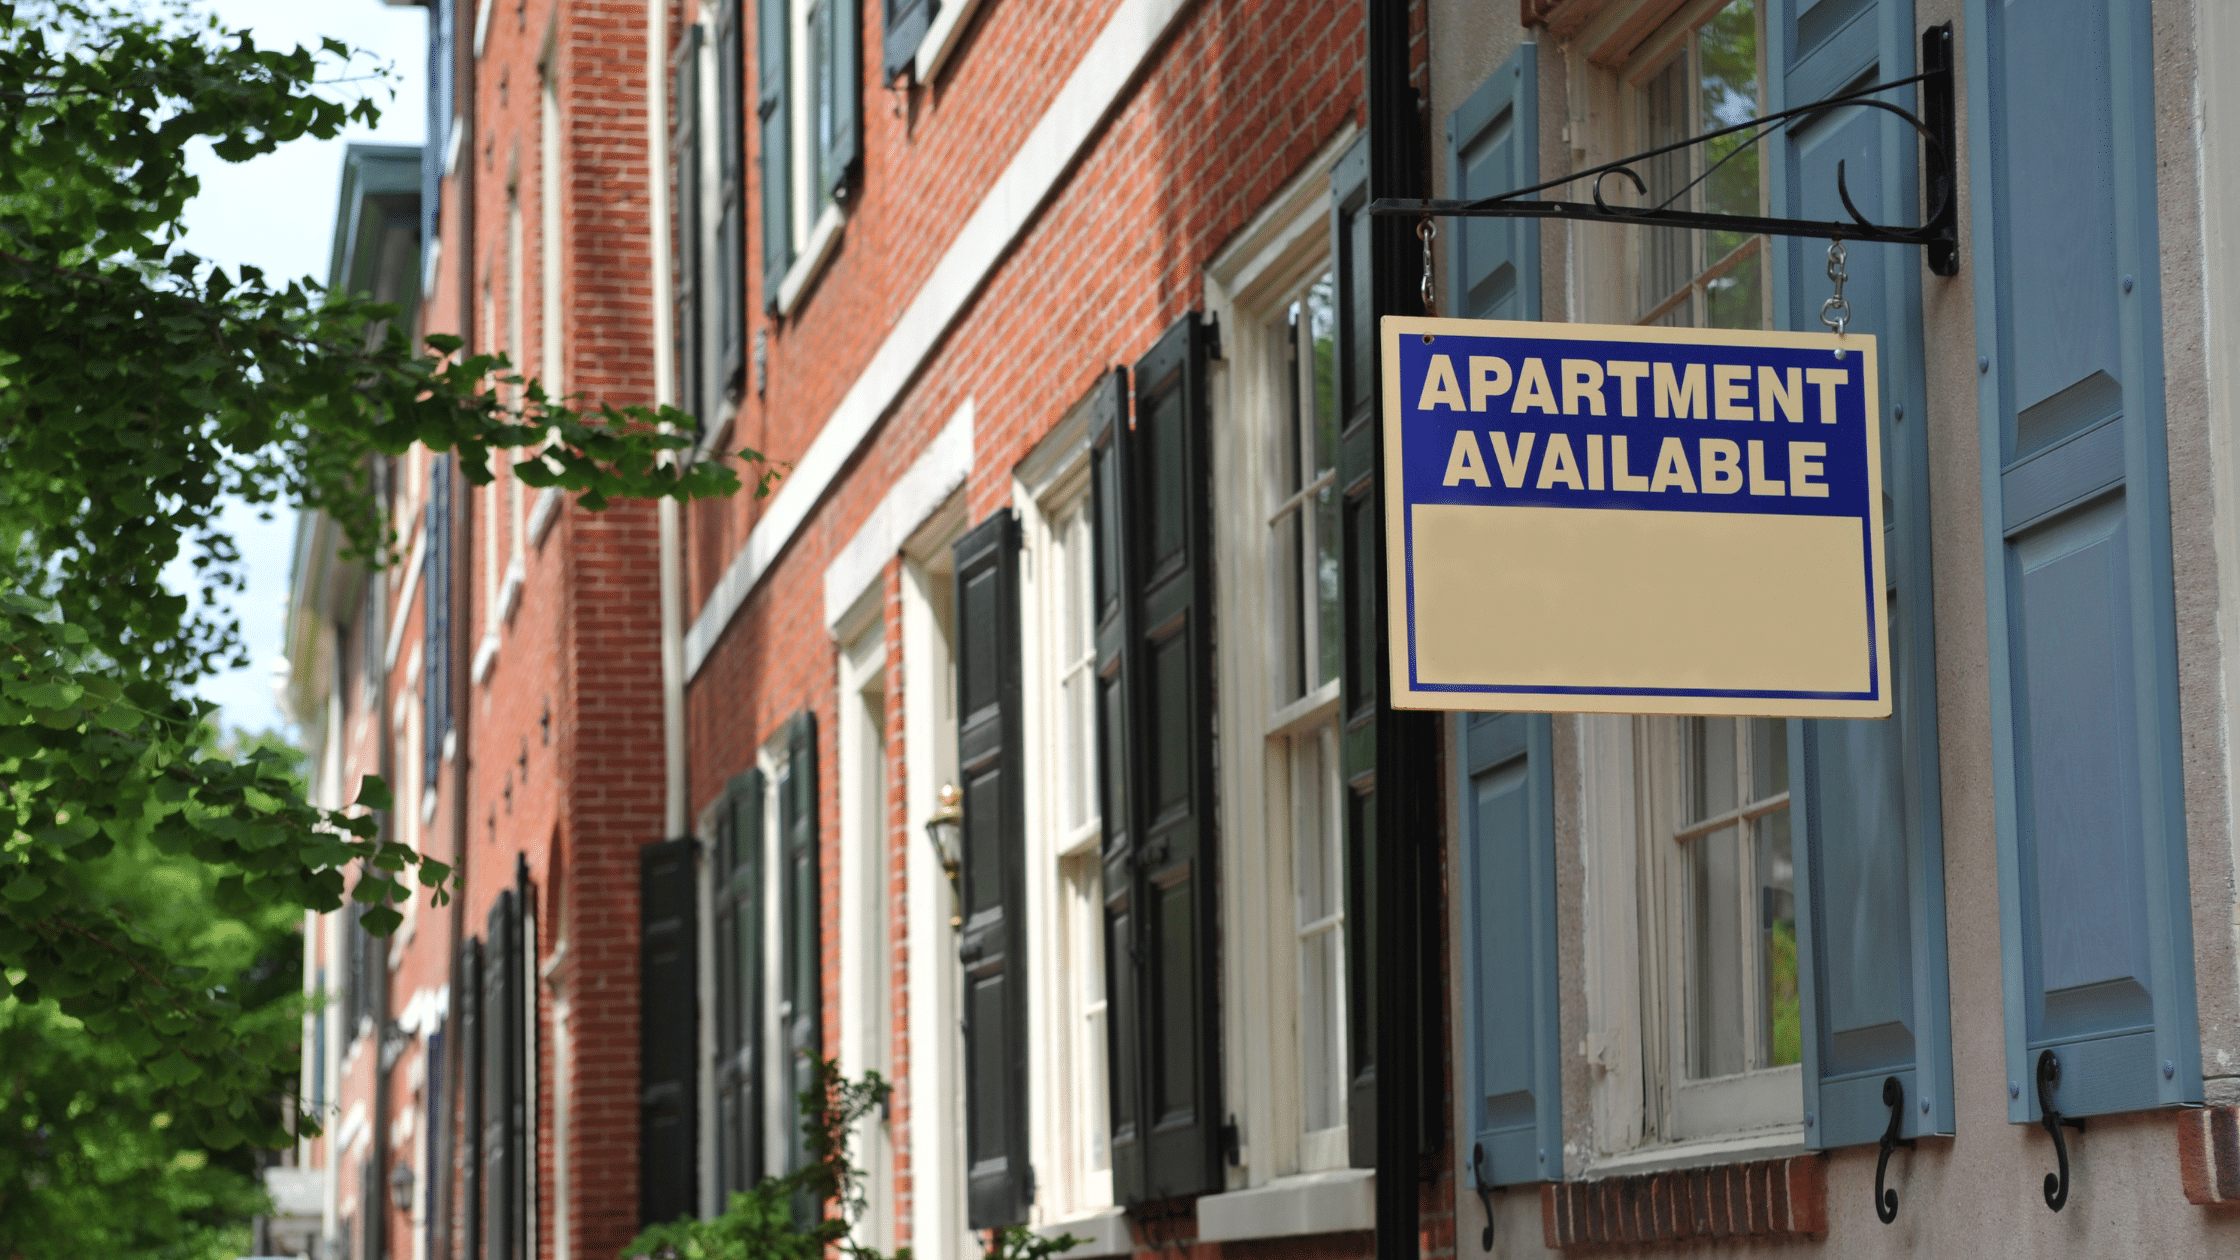 New Philadelphia Law Aims to Increase Transparency in Rental Screening Process